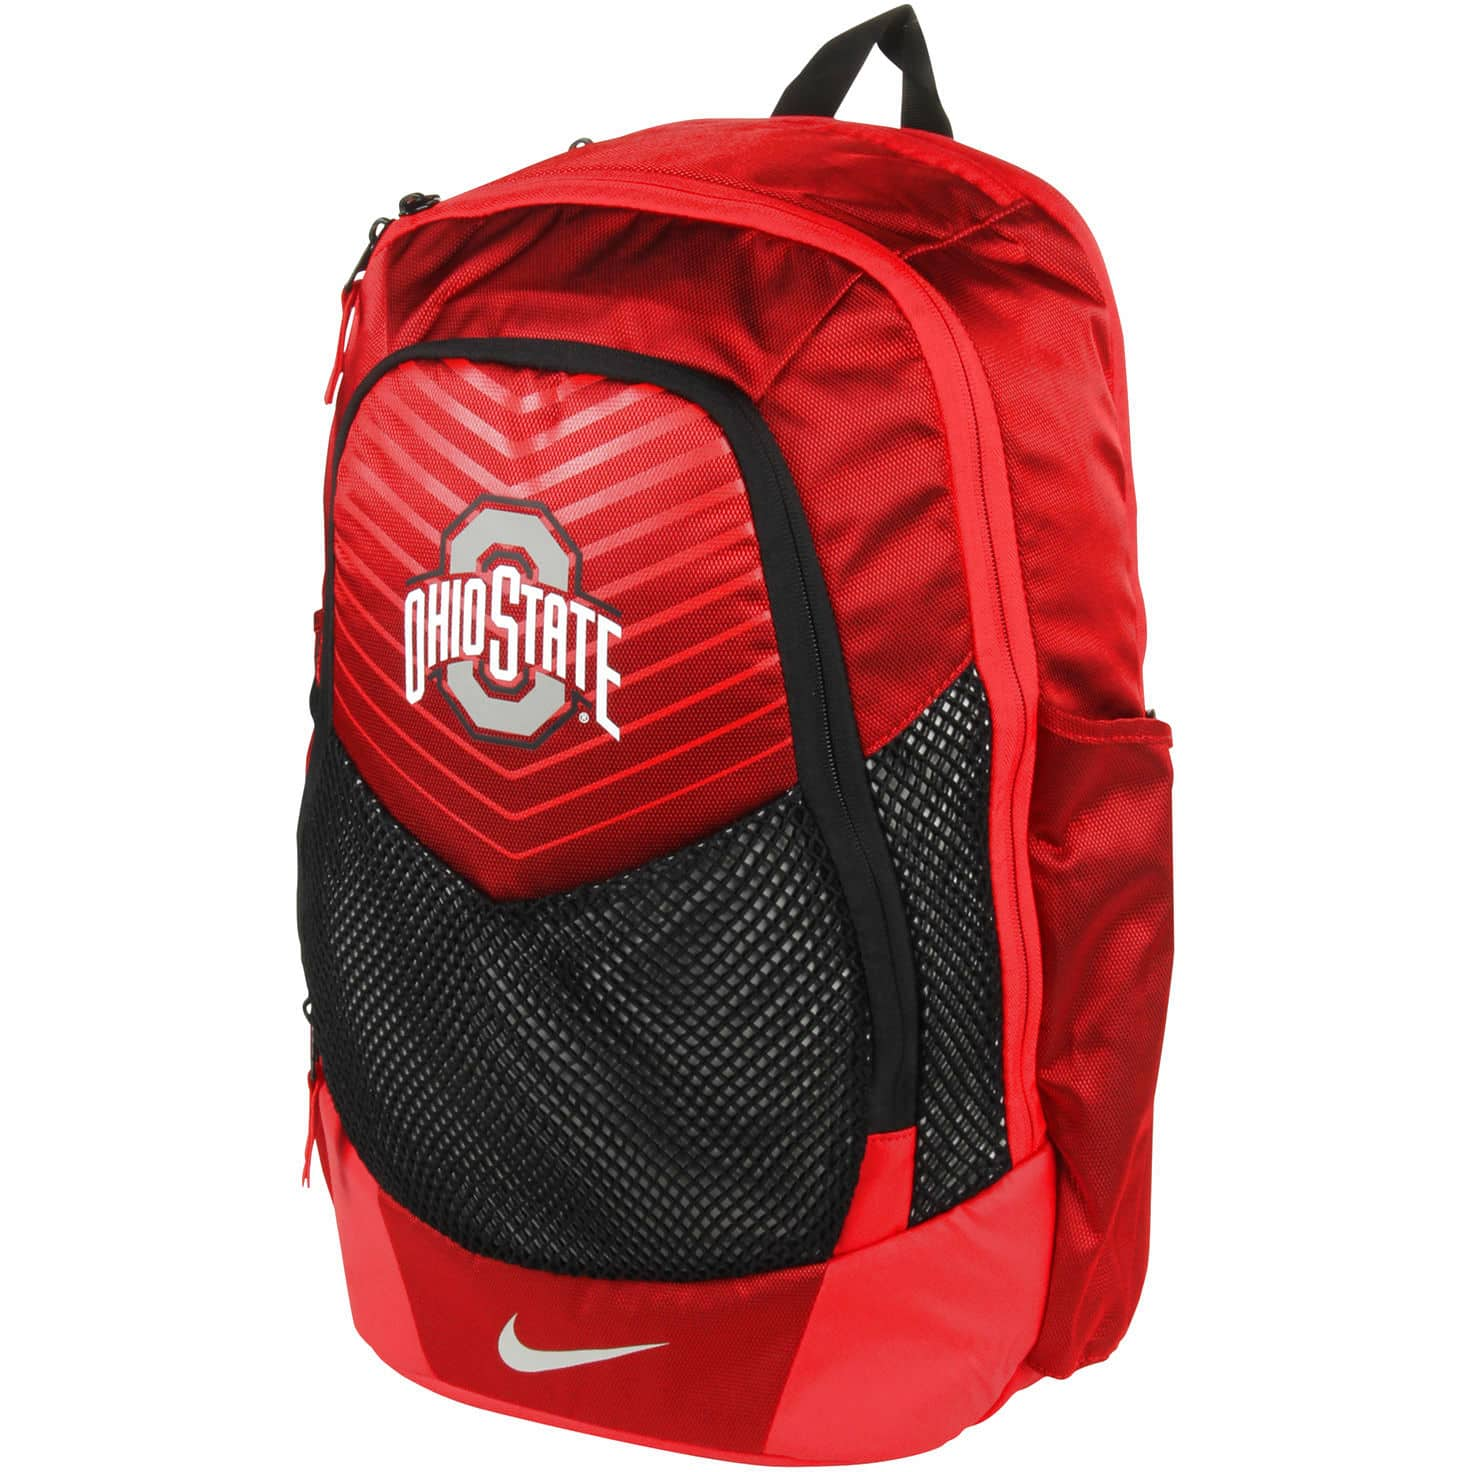 7c9c56bbf260 Nike College Vapor Power Backpack ( 40.48 + Tax) - Slickdeals.net